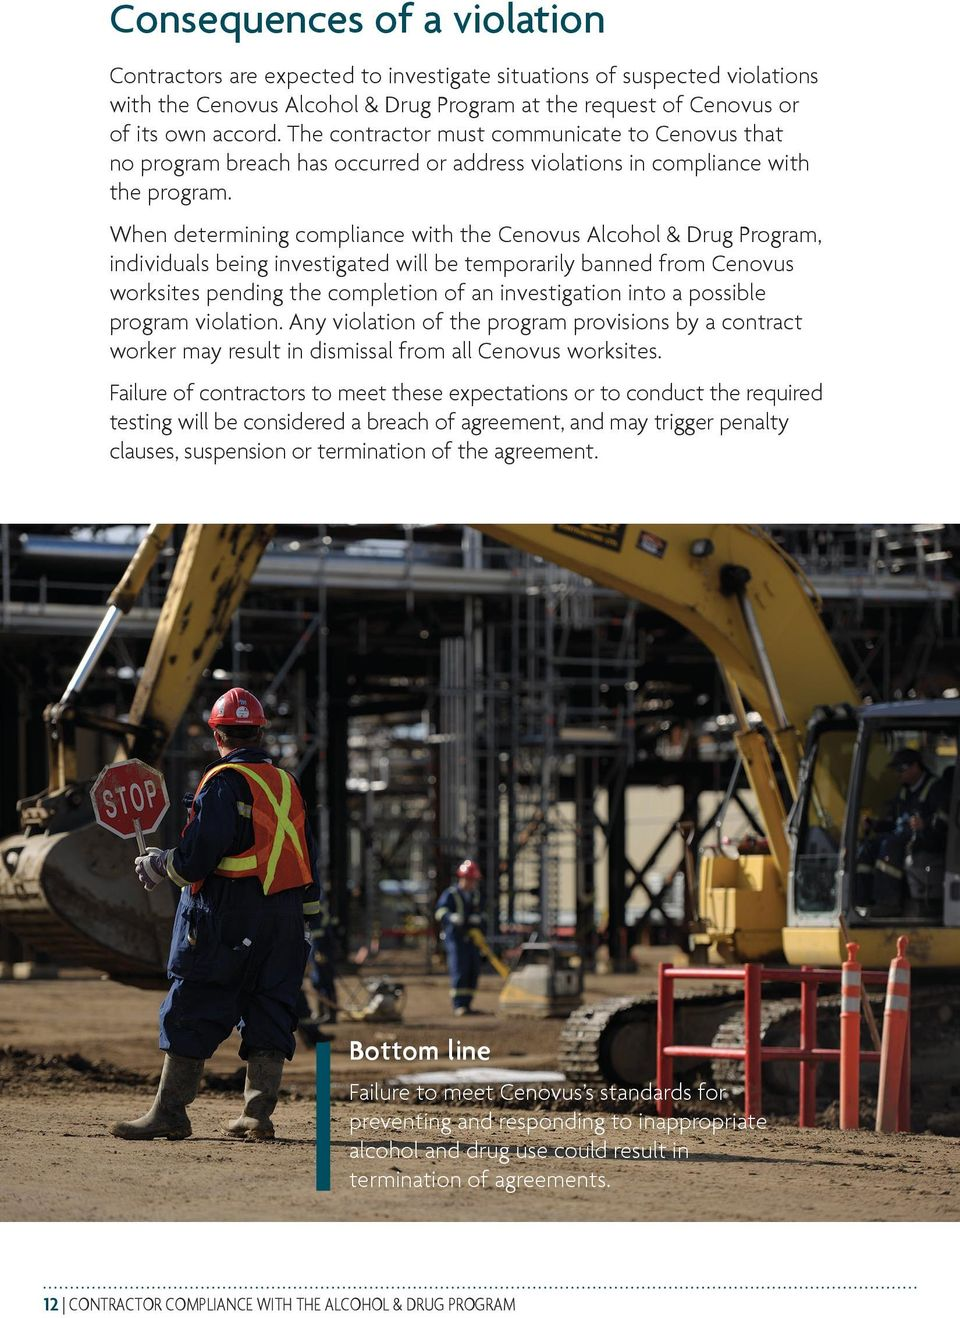 When determining compliance with the Cenovus Alcohol & Drug Program, individuals being investigated will be temporarily banned from Cenovus worksites pending the completion of an investigation into a